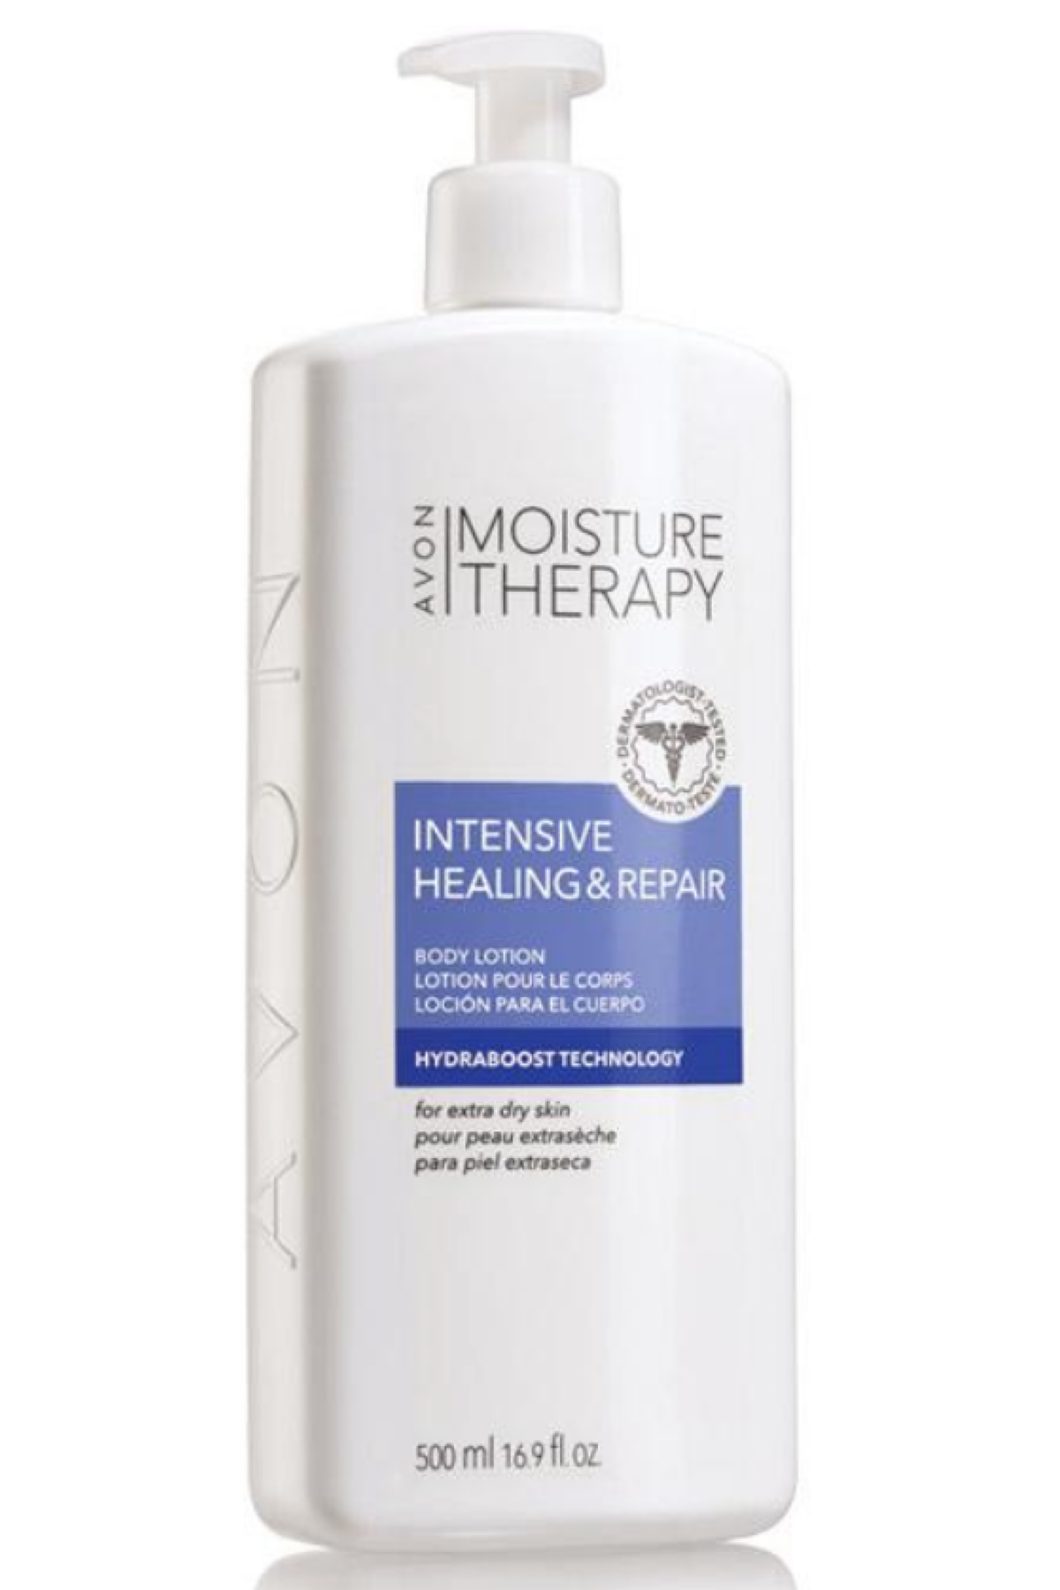 Moisture Therapy Intensive Healing & Repair Body Lotion 500ml